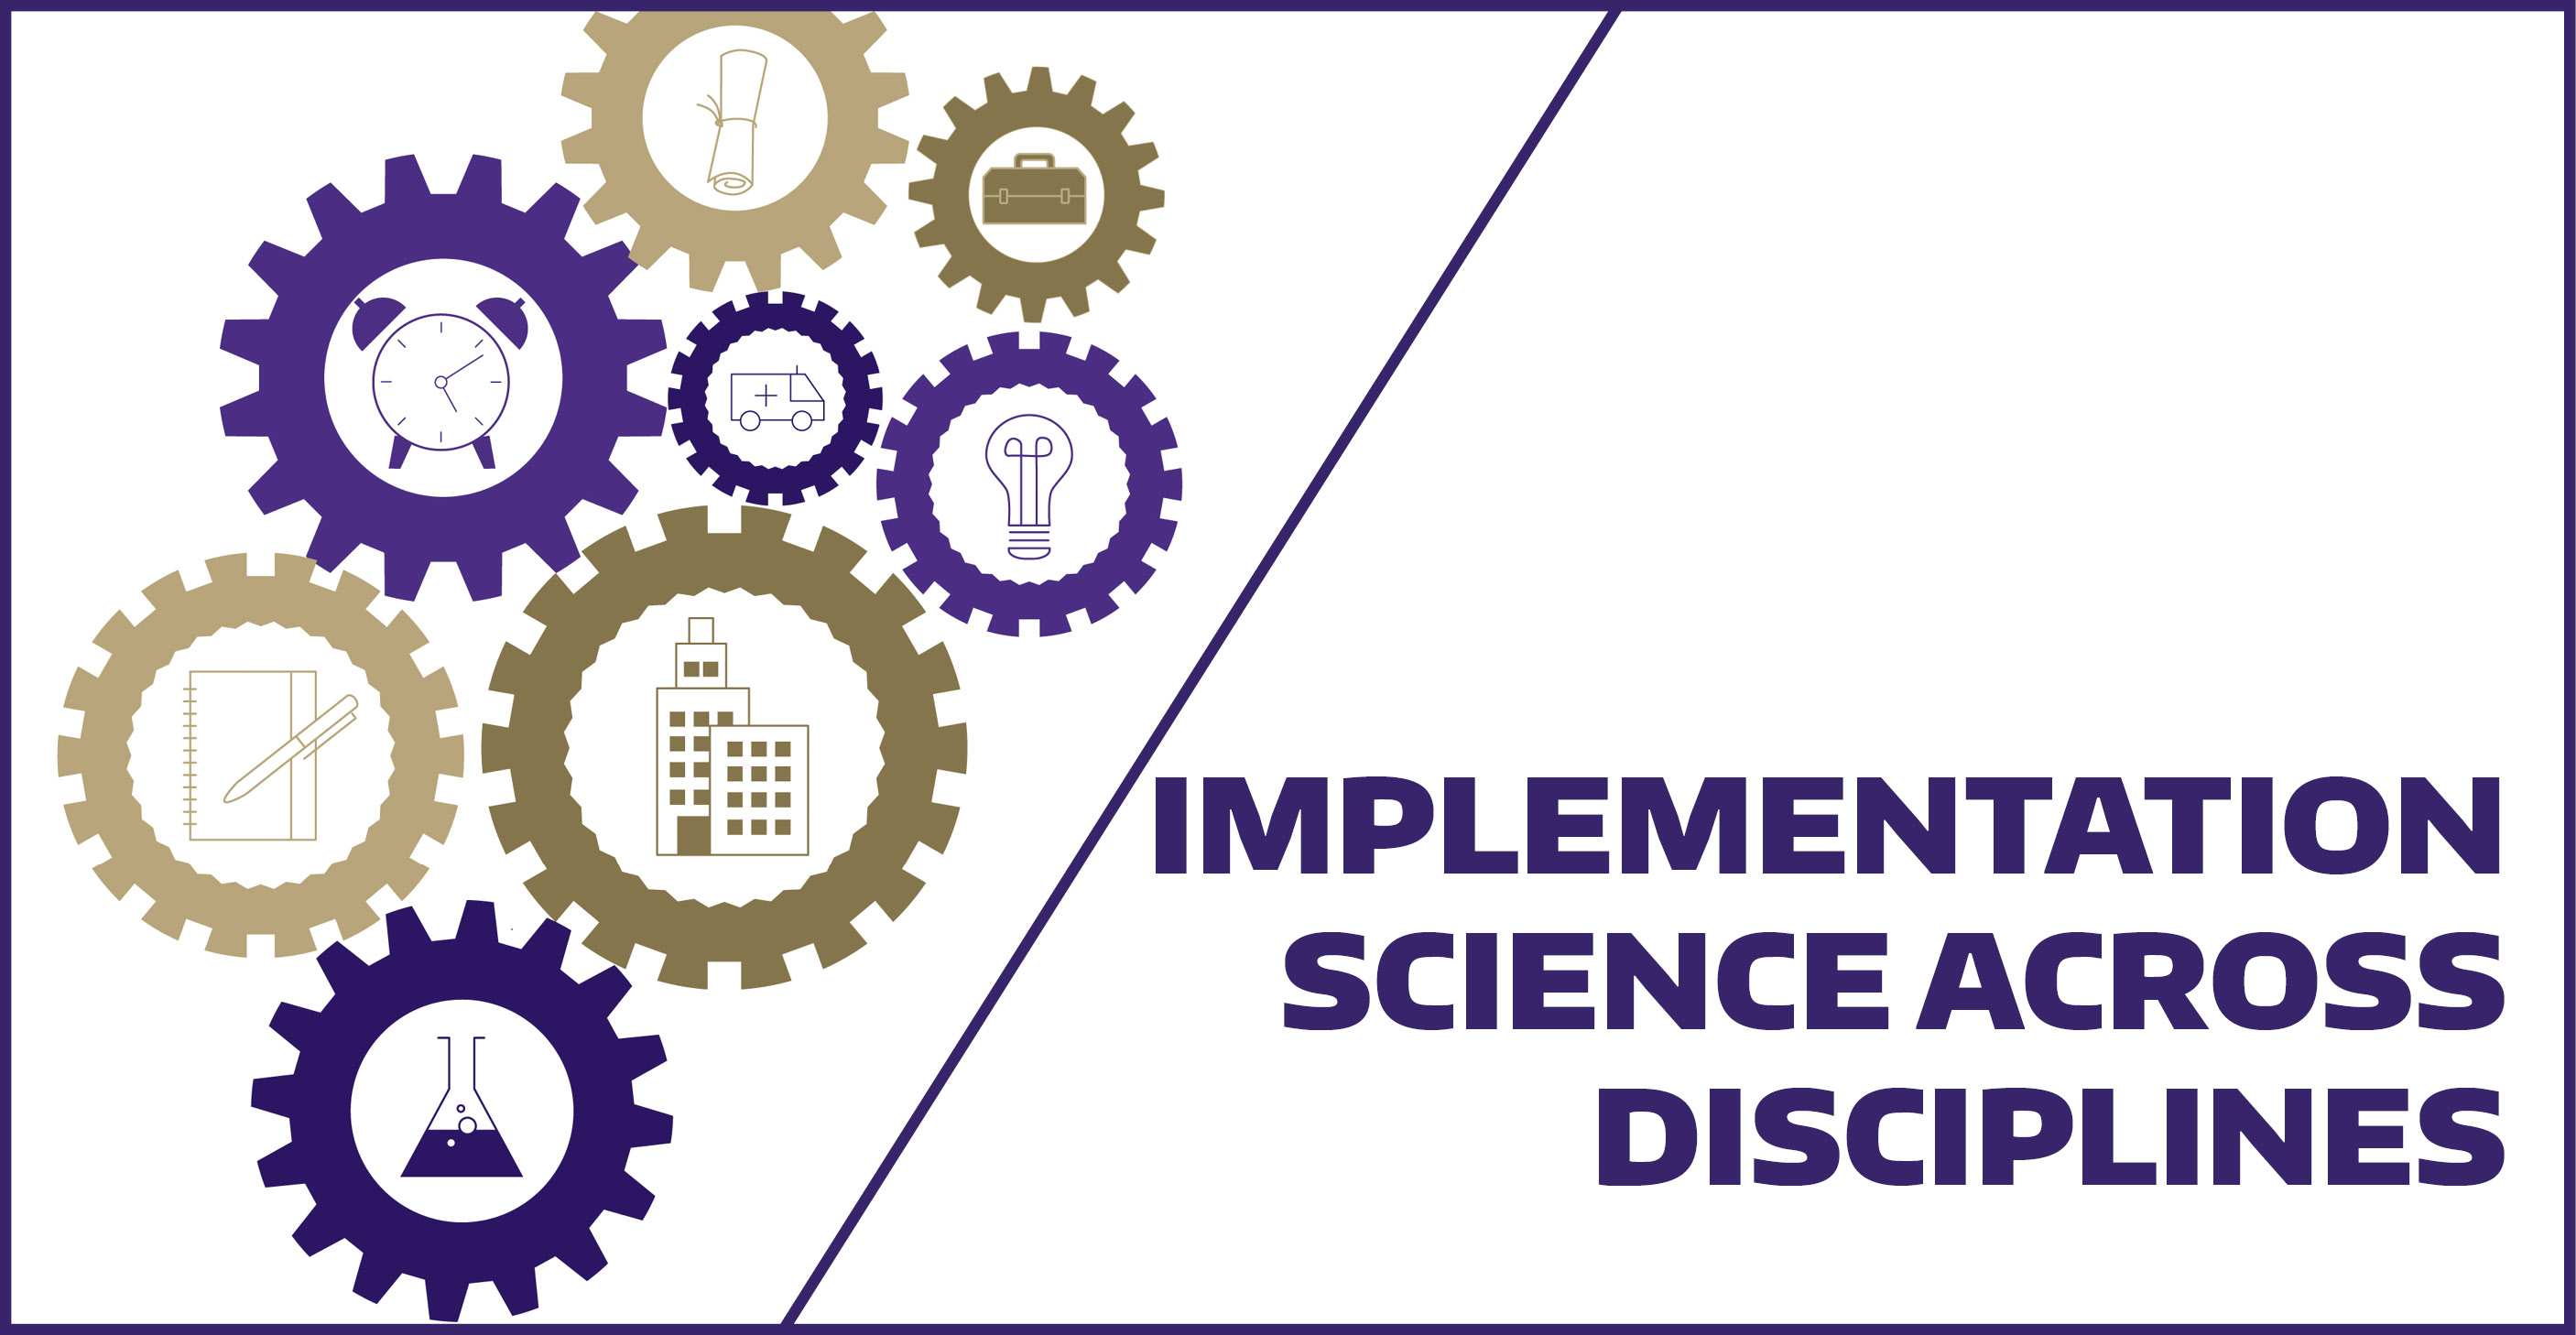 Implementation science across disciplines